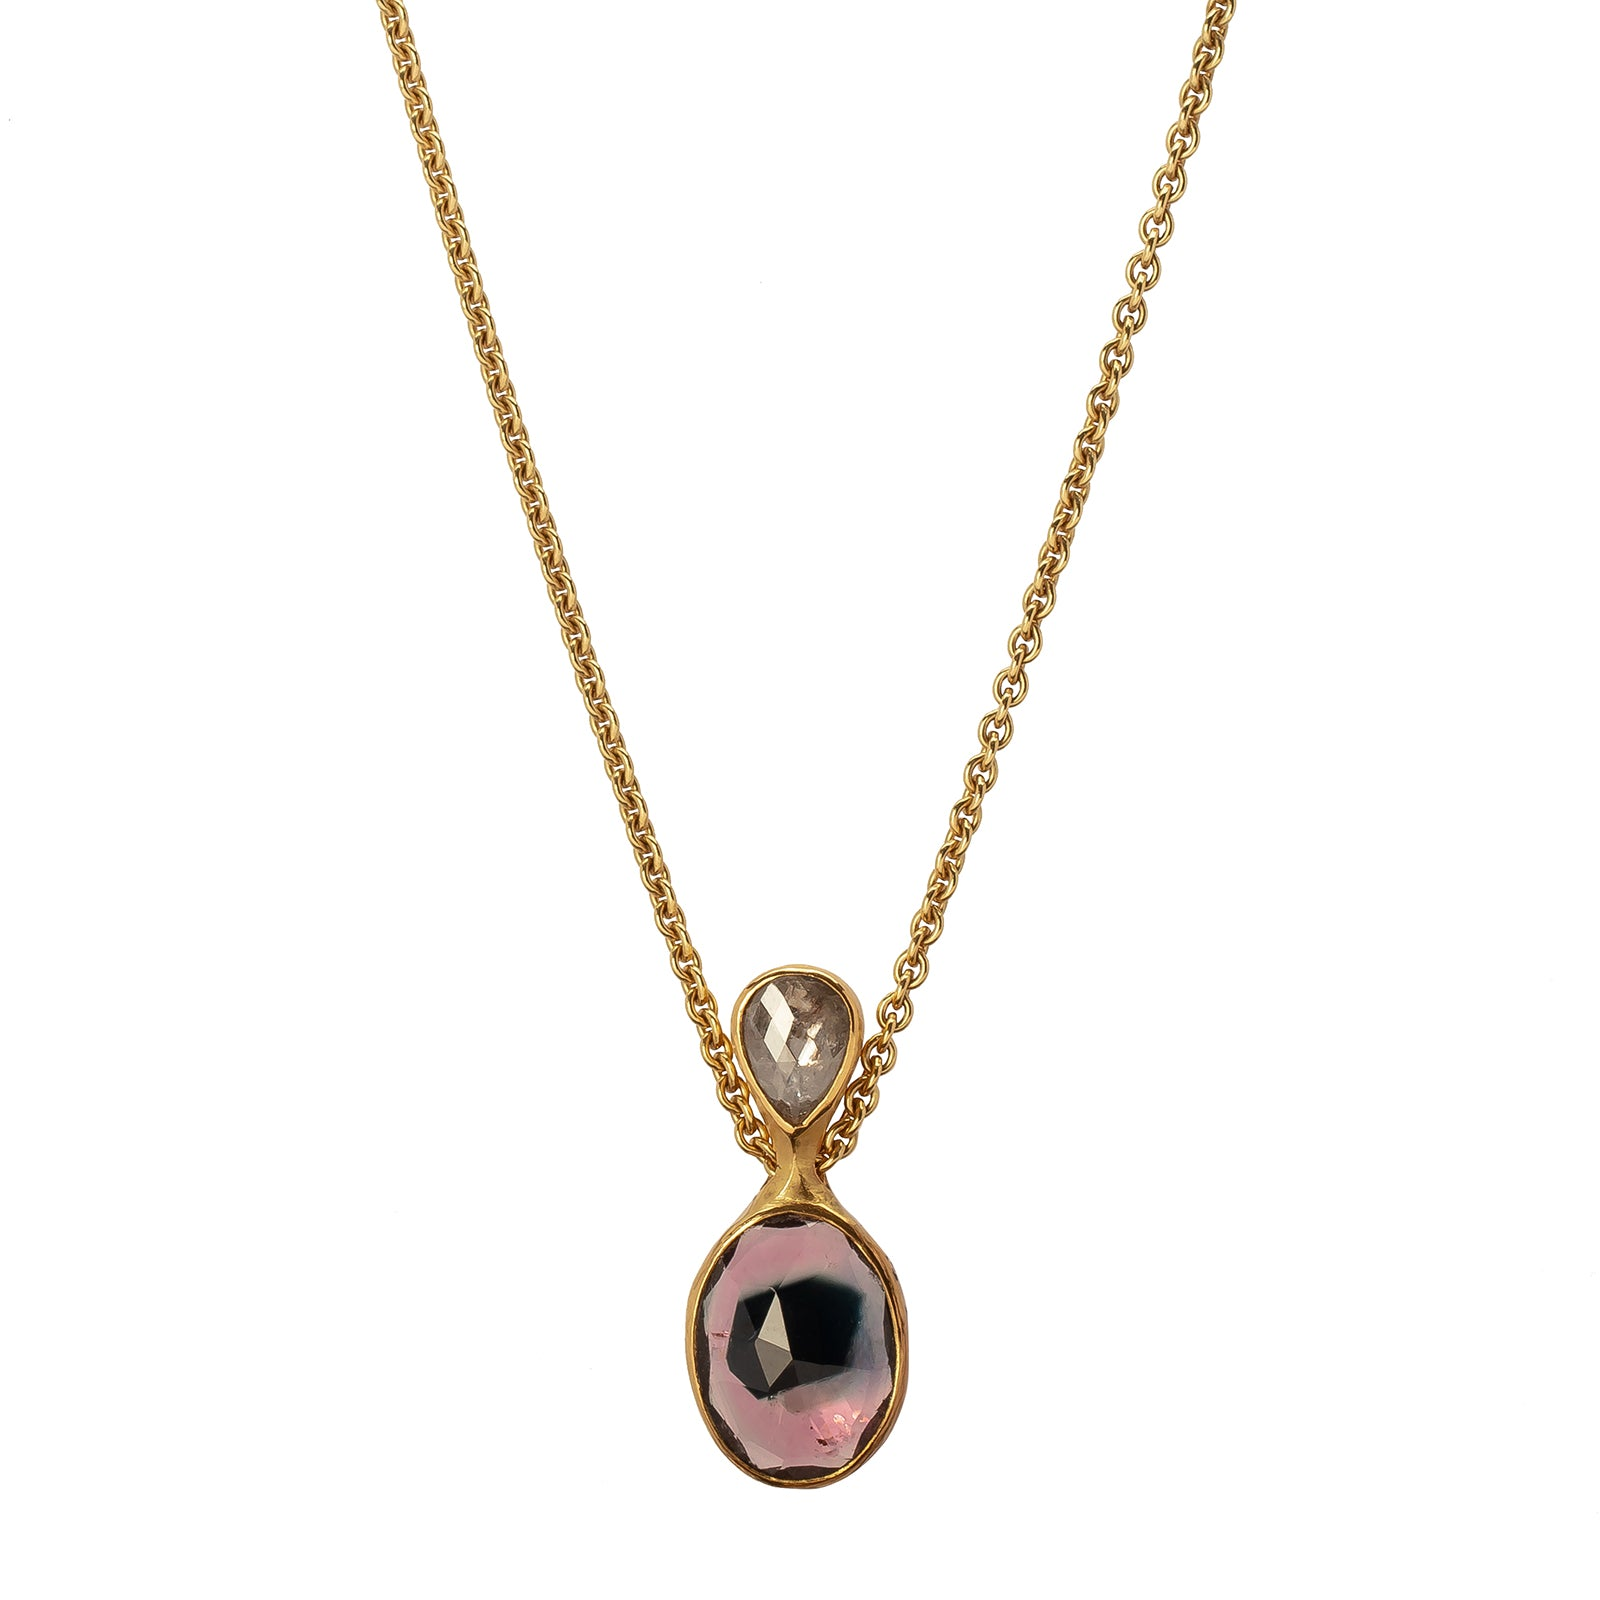 Atelier Zobel Pendant Necklace - Tourmaline - Necklaces - Broken English Jewelry